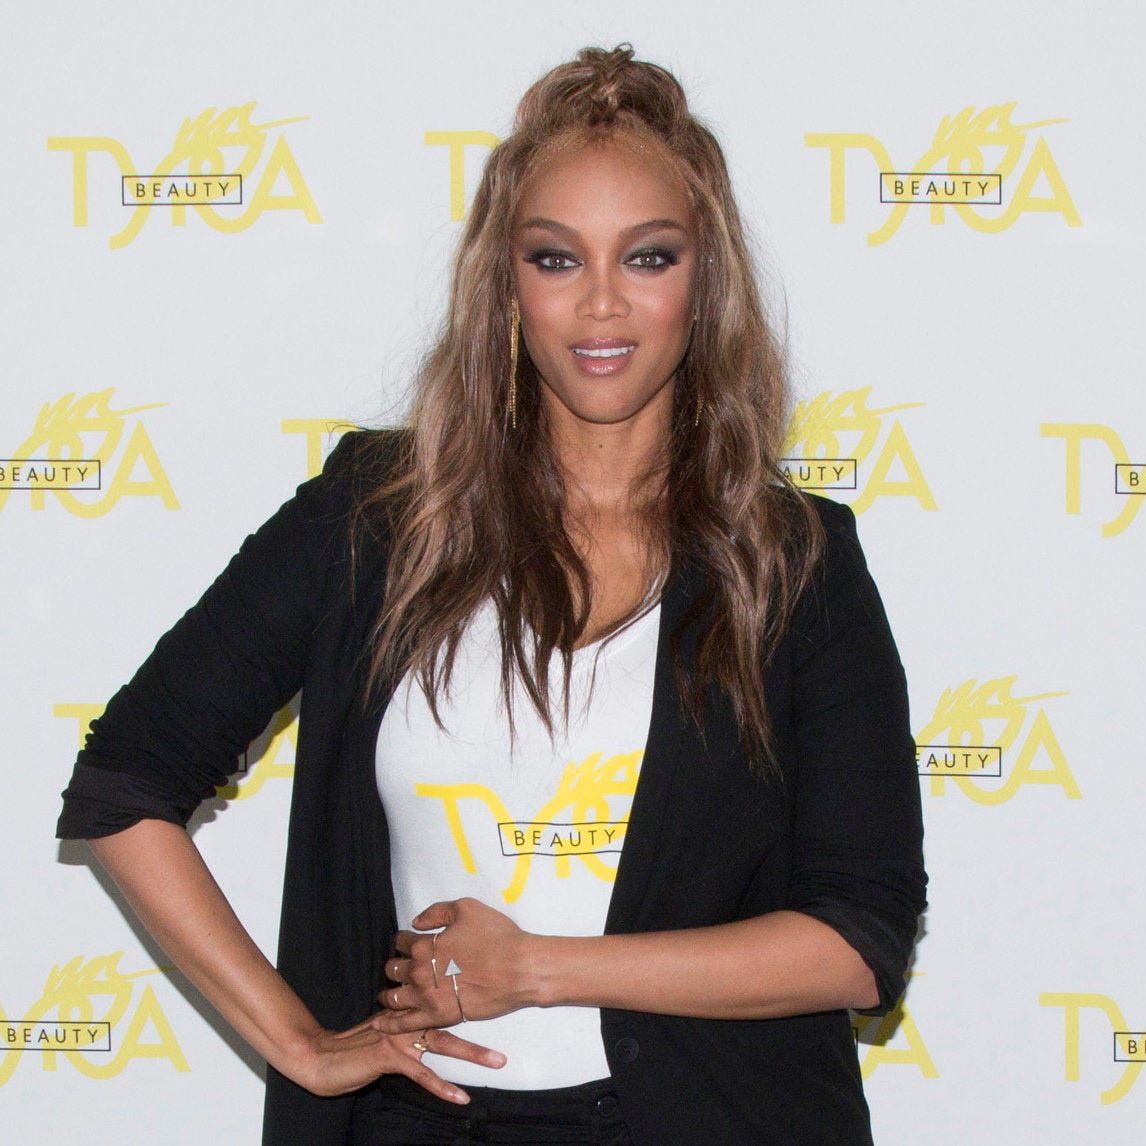 How 'America's Next Top Model' Made Tyra Banks a Better Businesswoman